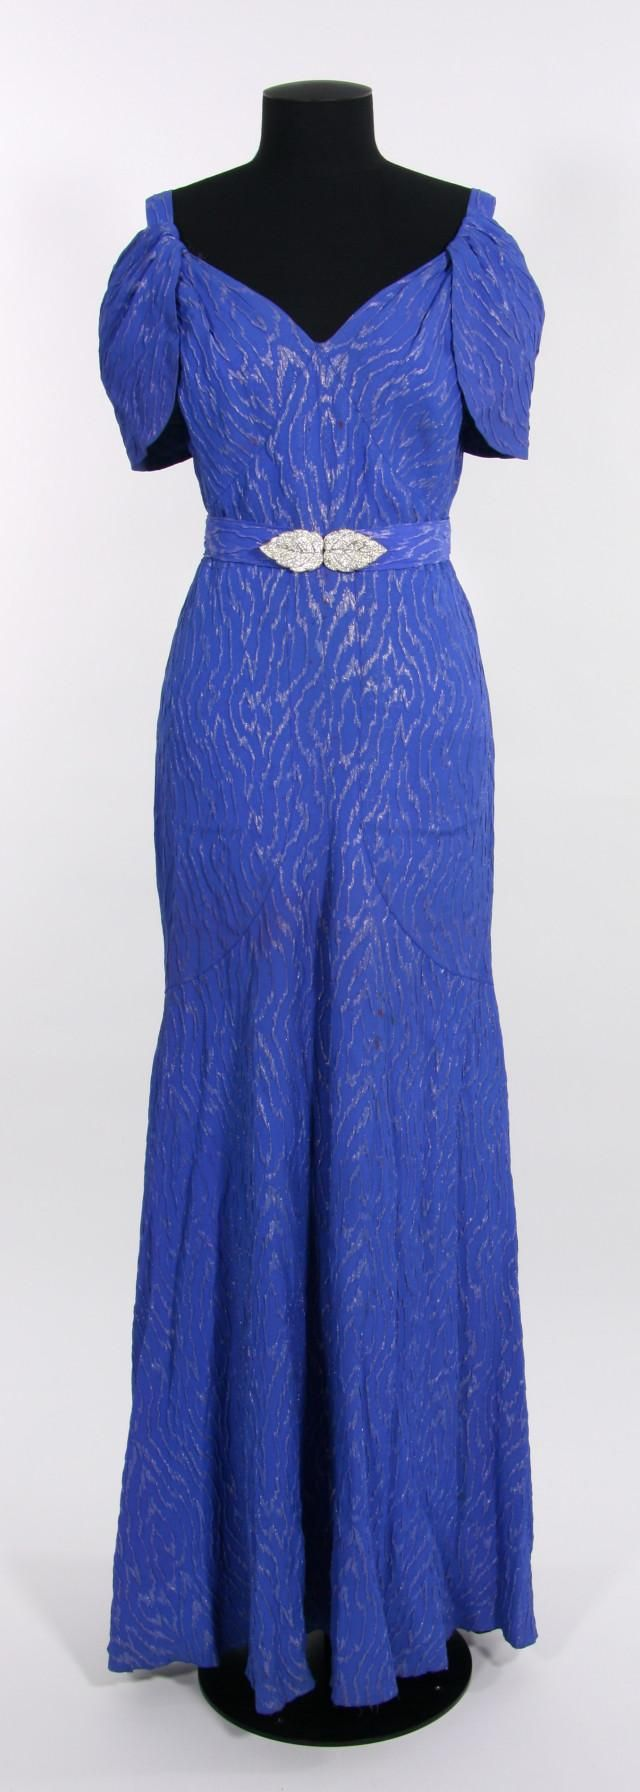 Object evening dress s collections online museum of new